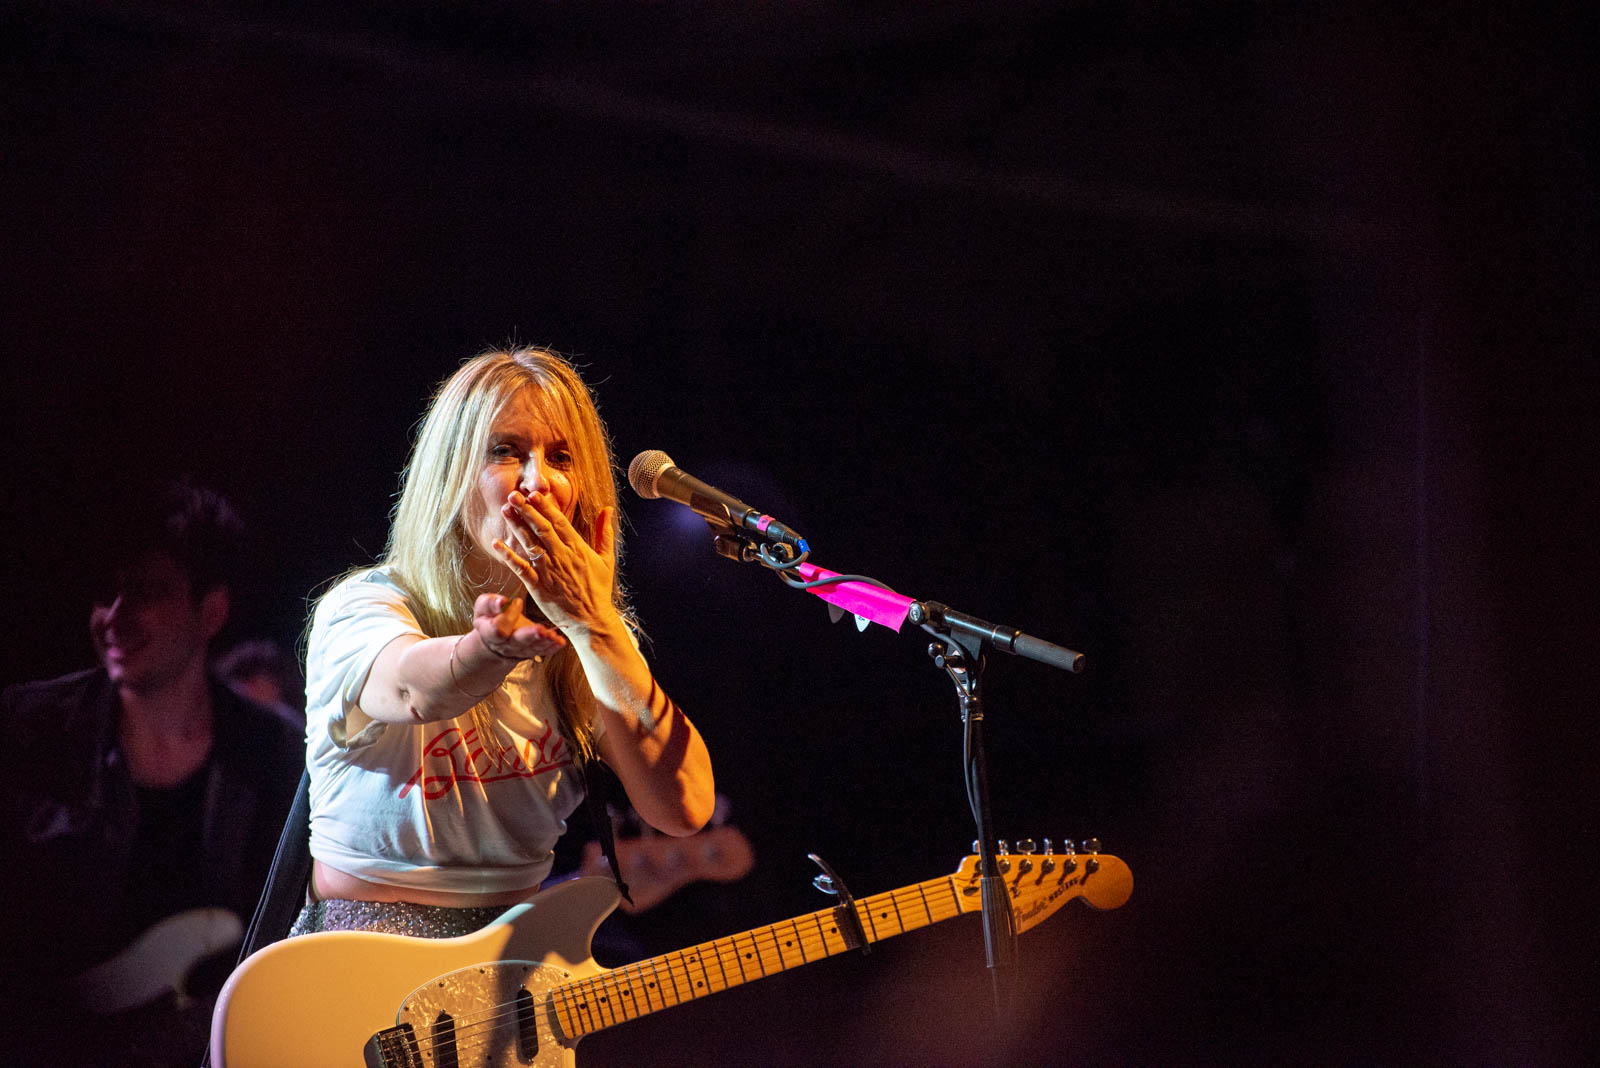 Liz Phair at House of Vans